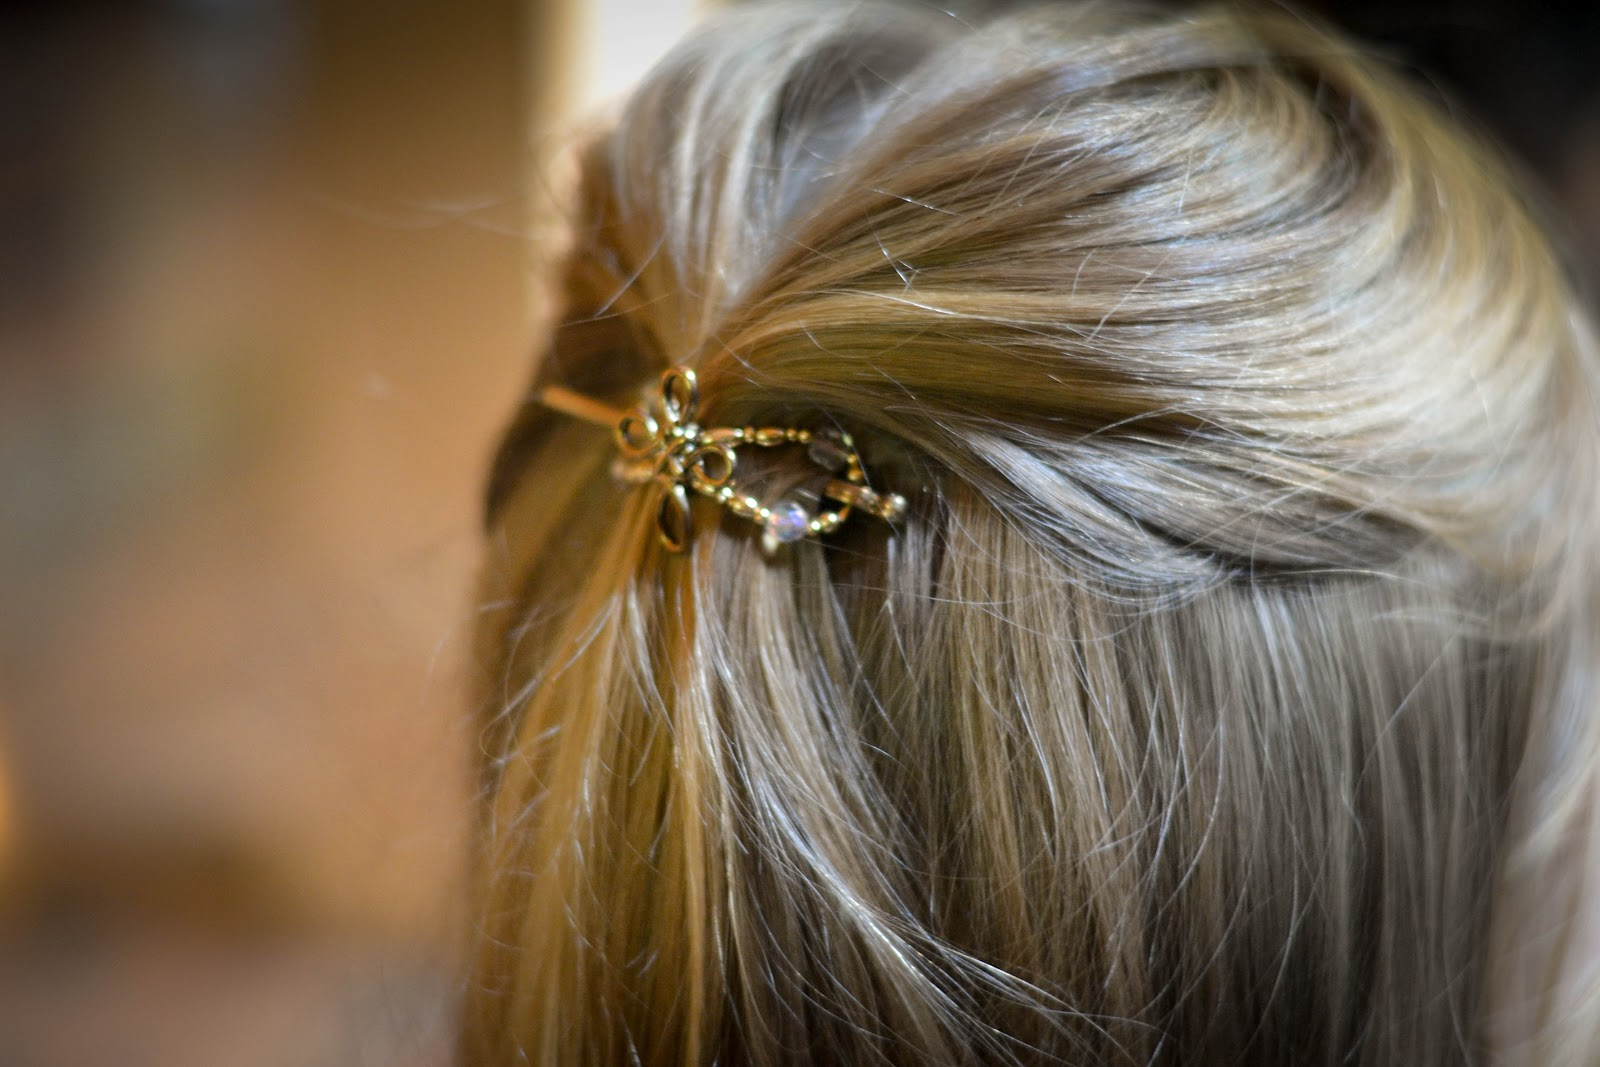 hairstyles with headband : hairstyles for long hair with clips hairstyles with claw clips